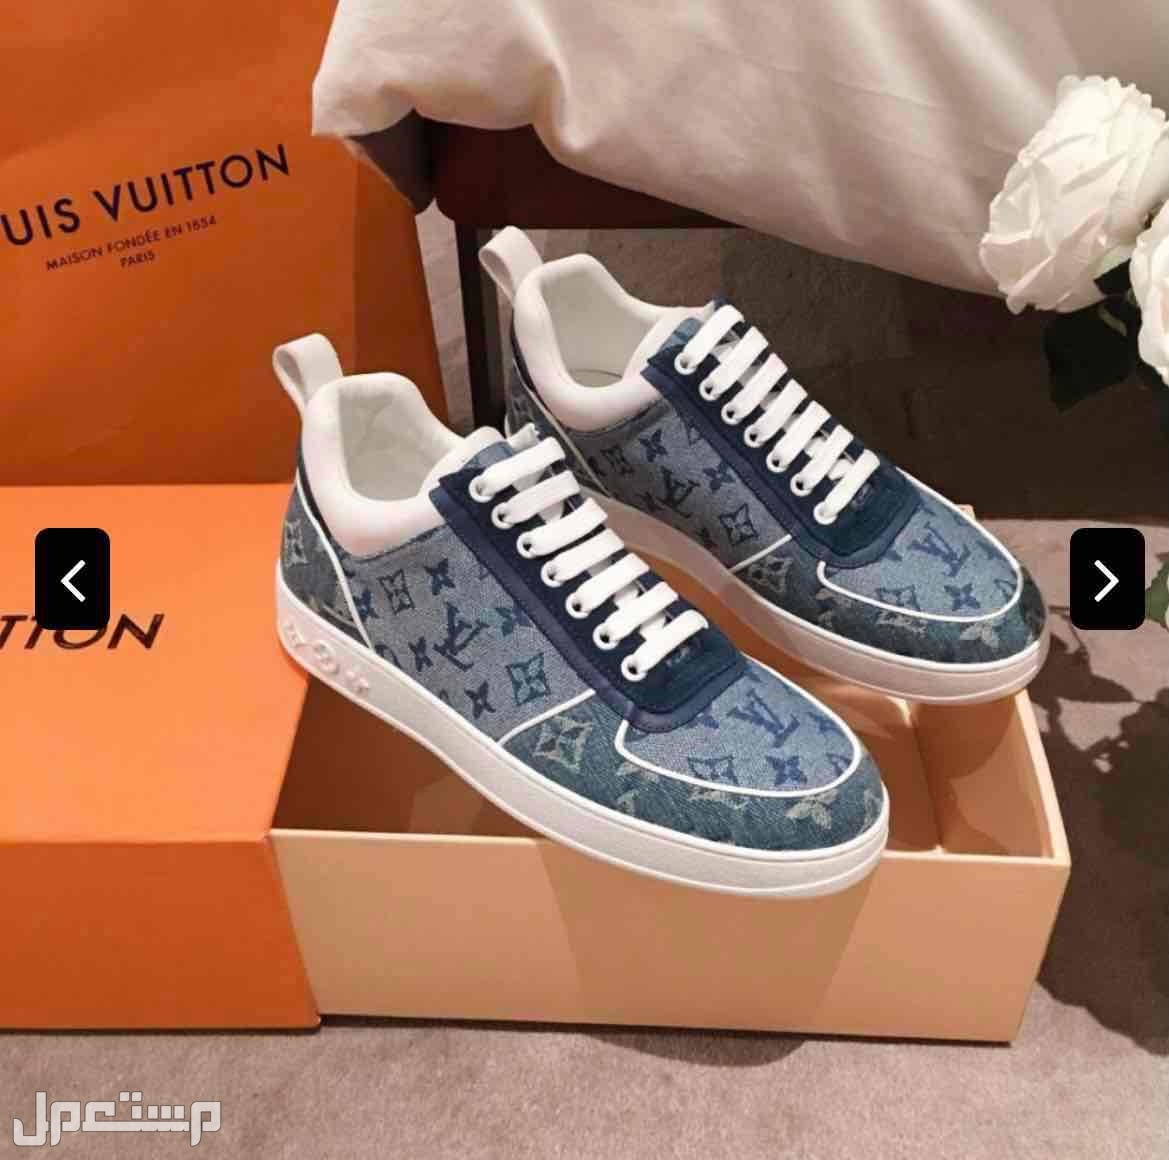 LOUIS VUITTON DIORS بناتي For girls